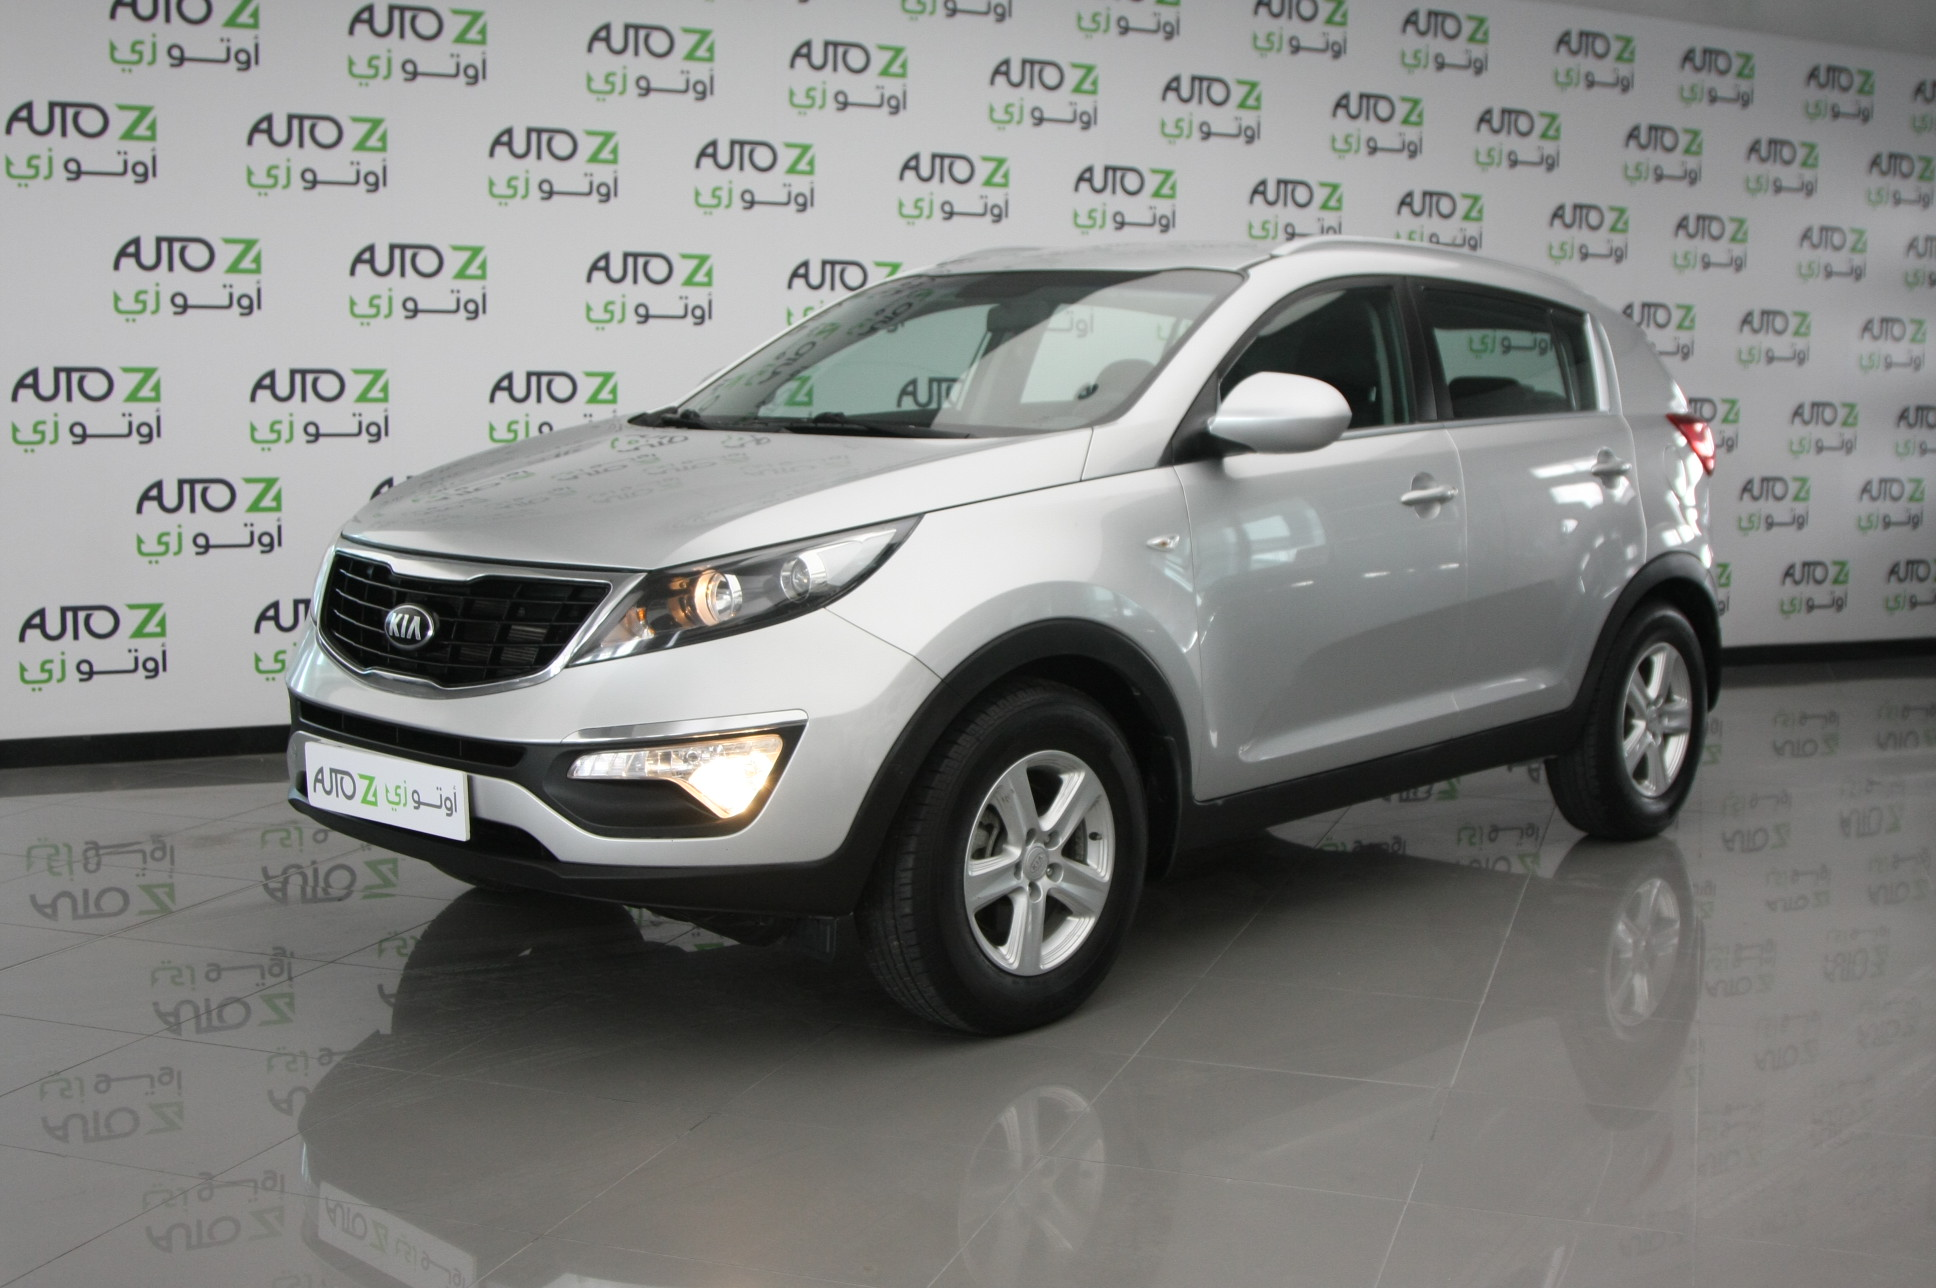 week new of the car sportage news kia side all view